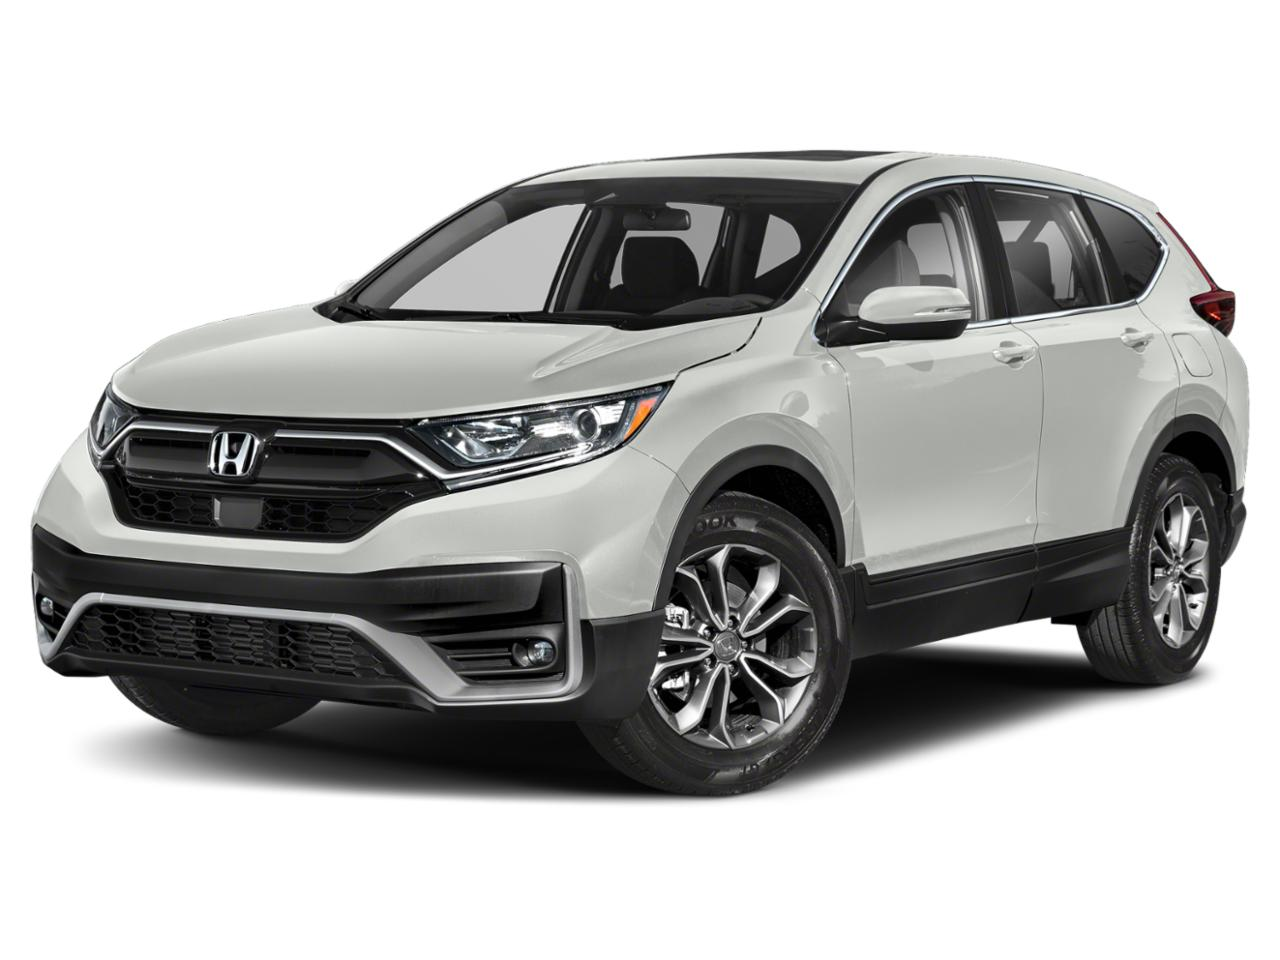 2020 Honda CR-V Vehicle Photo in San Antonio, TX 78238